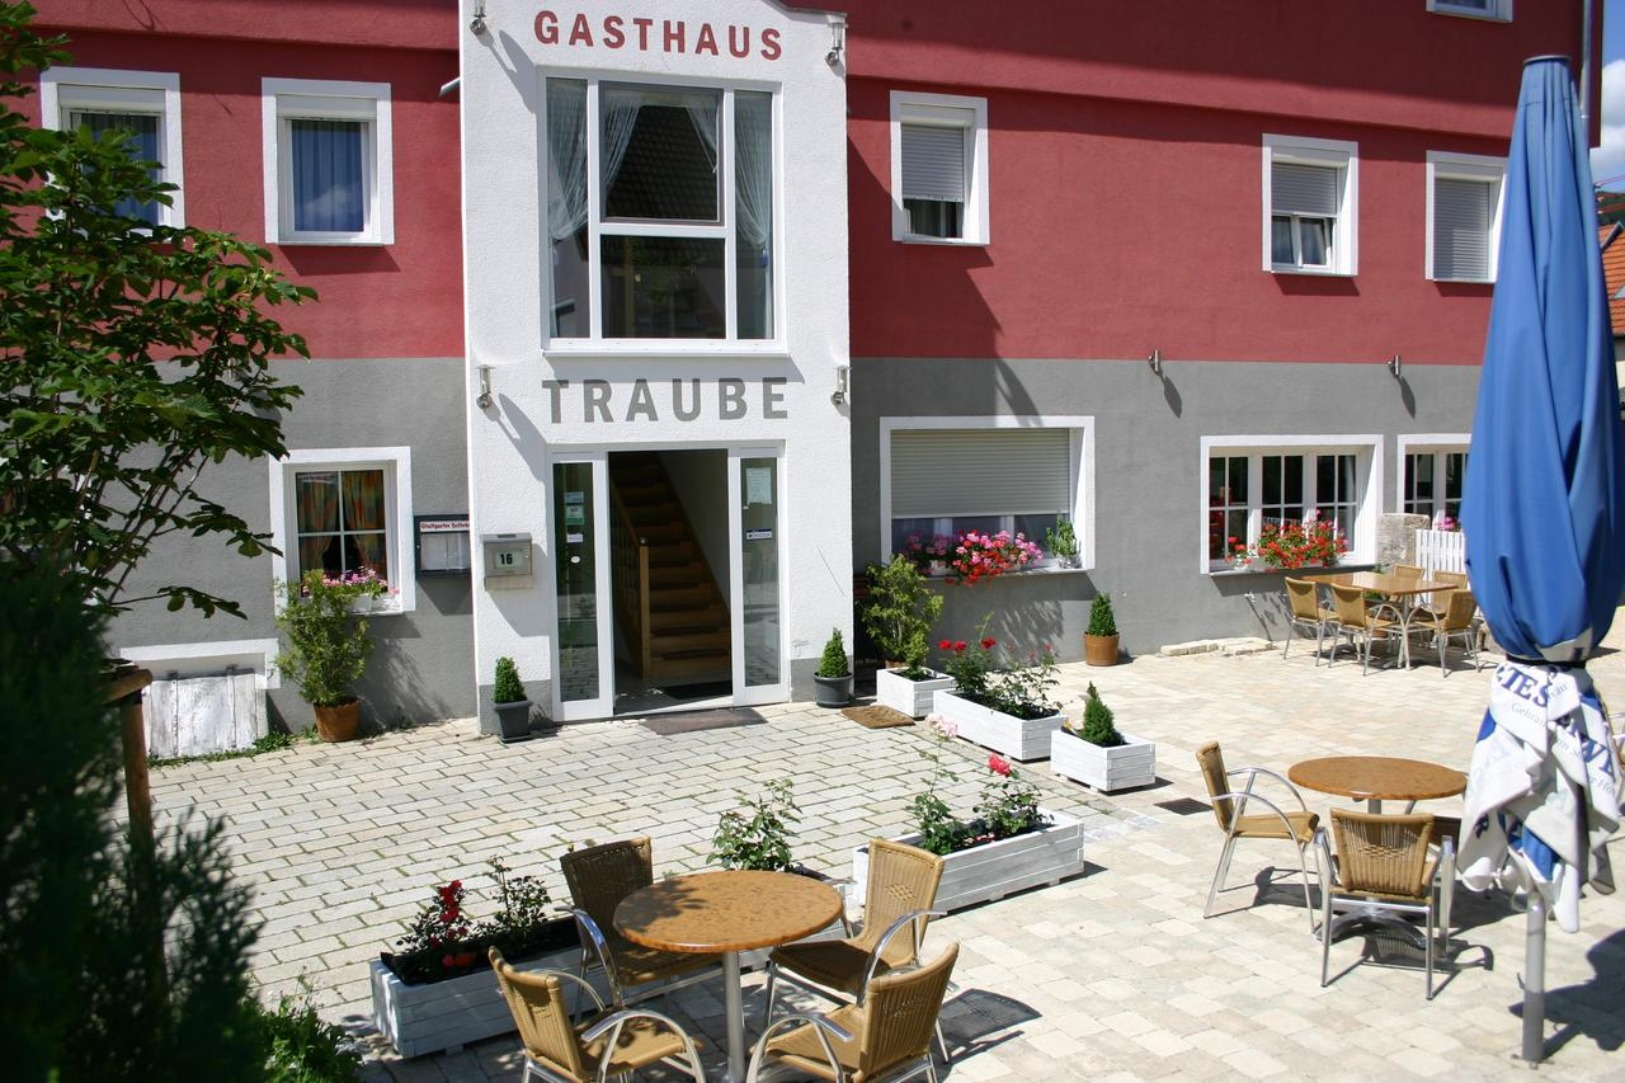 A person standing in front of a house at Gasthaus Traube.